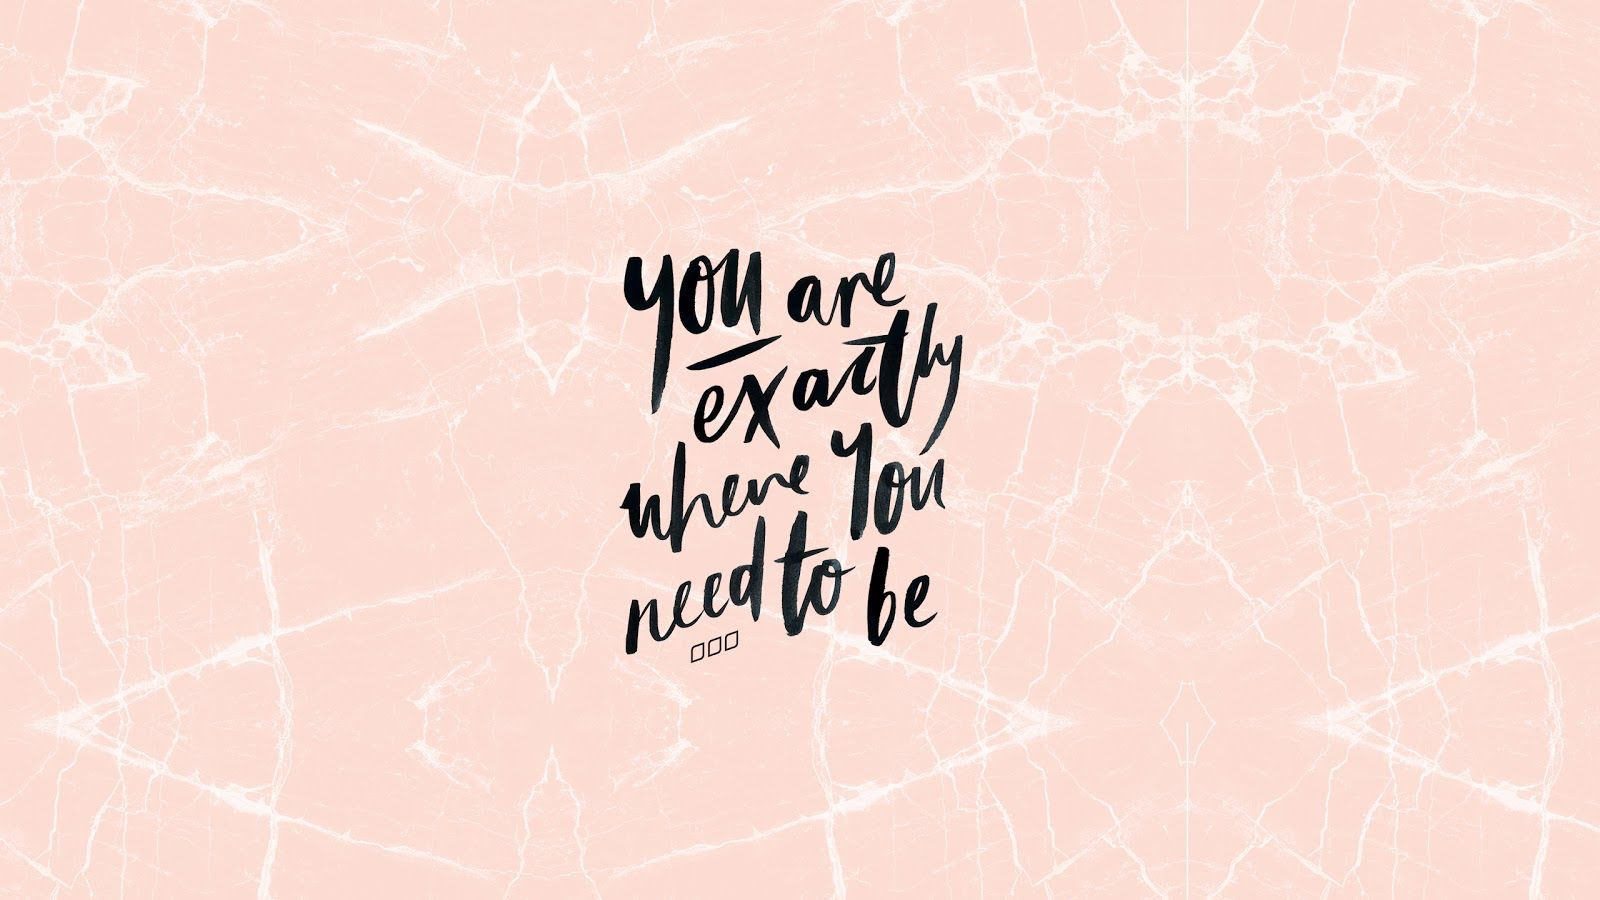 Something For Your Screen 28 Fresh Motivational Wallpapers To Help You Start Off The Semester Right Laptop Wallpaper Quotes Desktop Wallpaper Motivational Phone Wallpaper Quotes